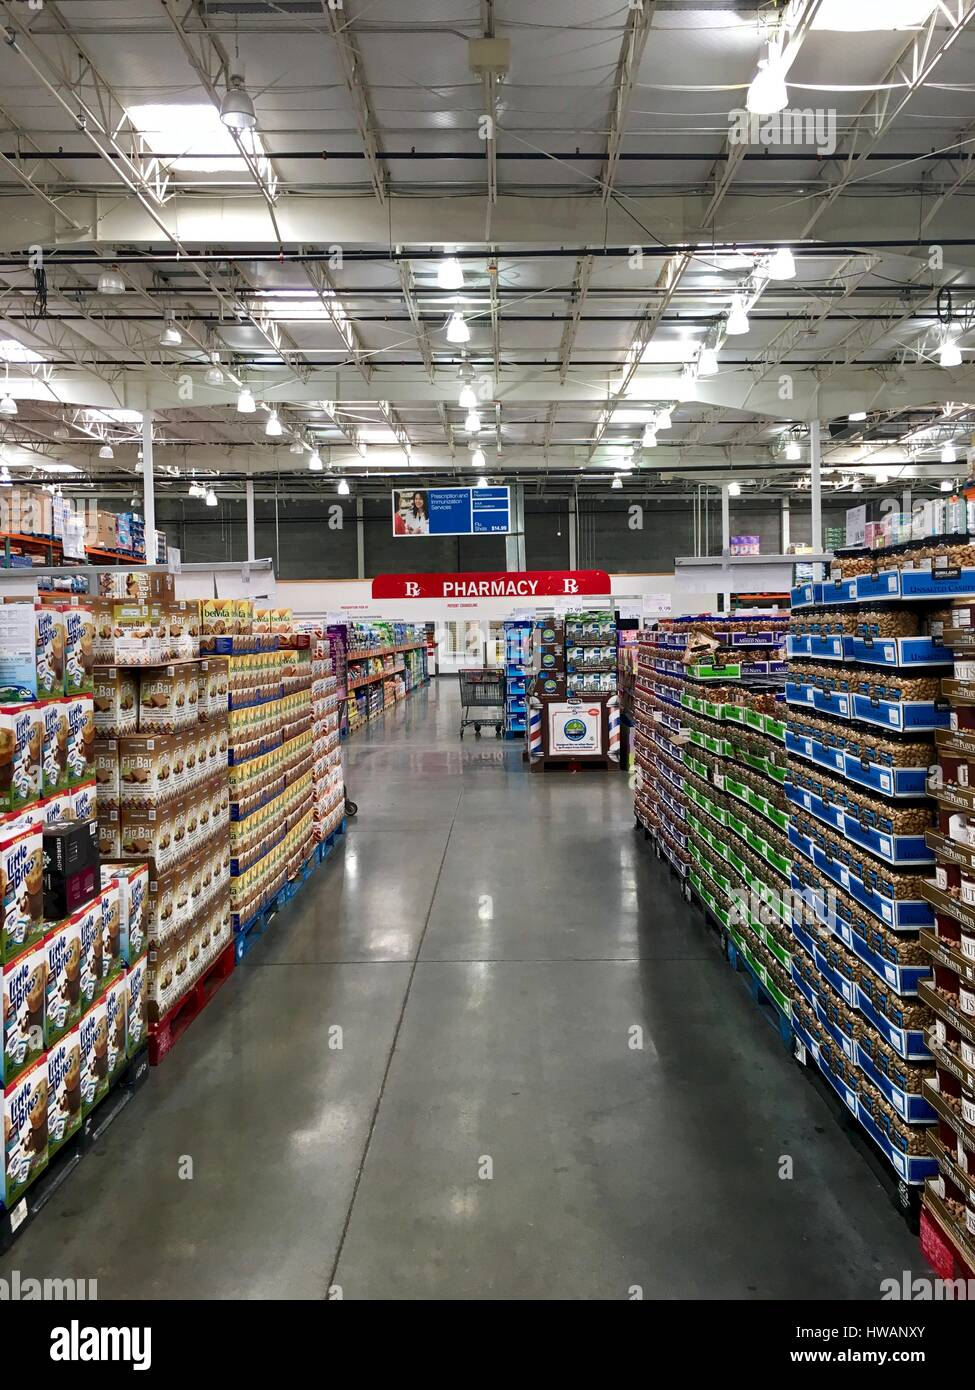 Where Could Costco Stock Be Heading? - Market Realist